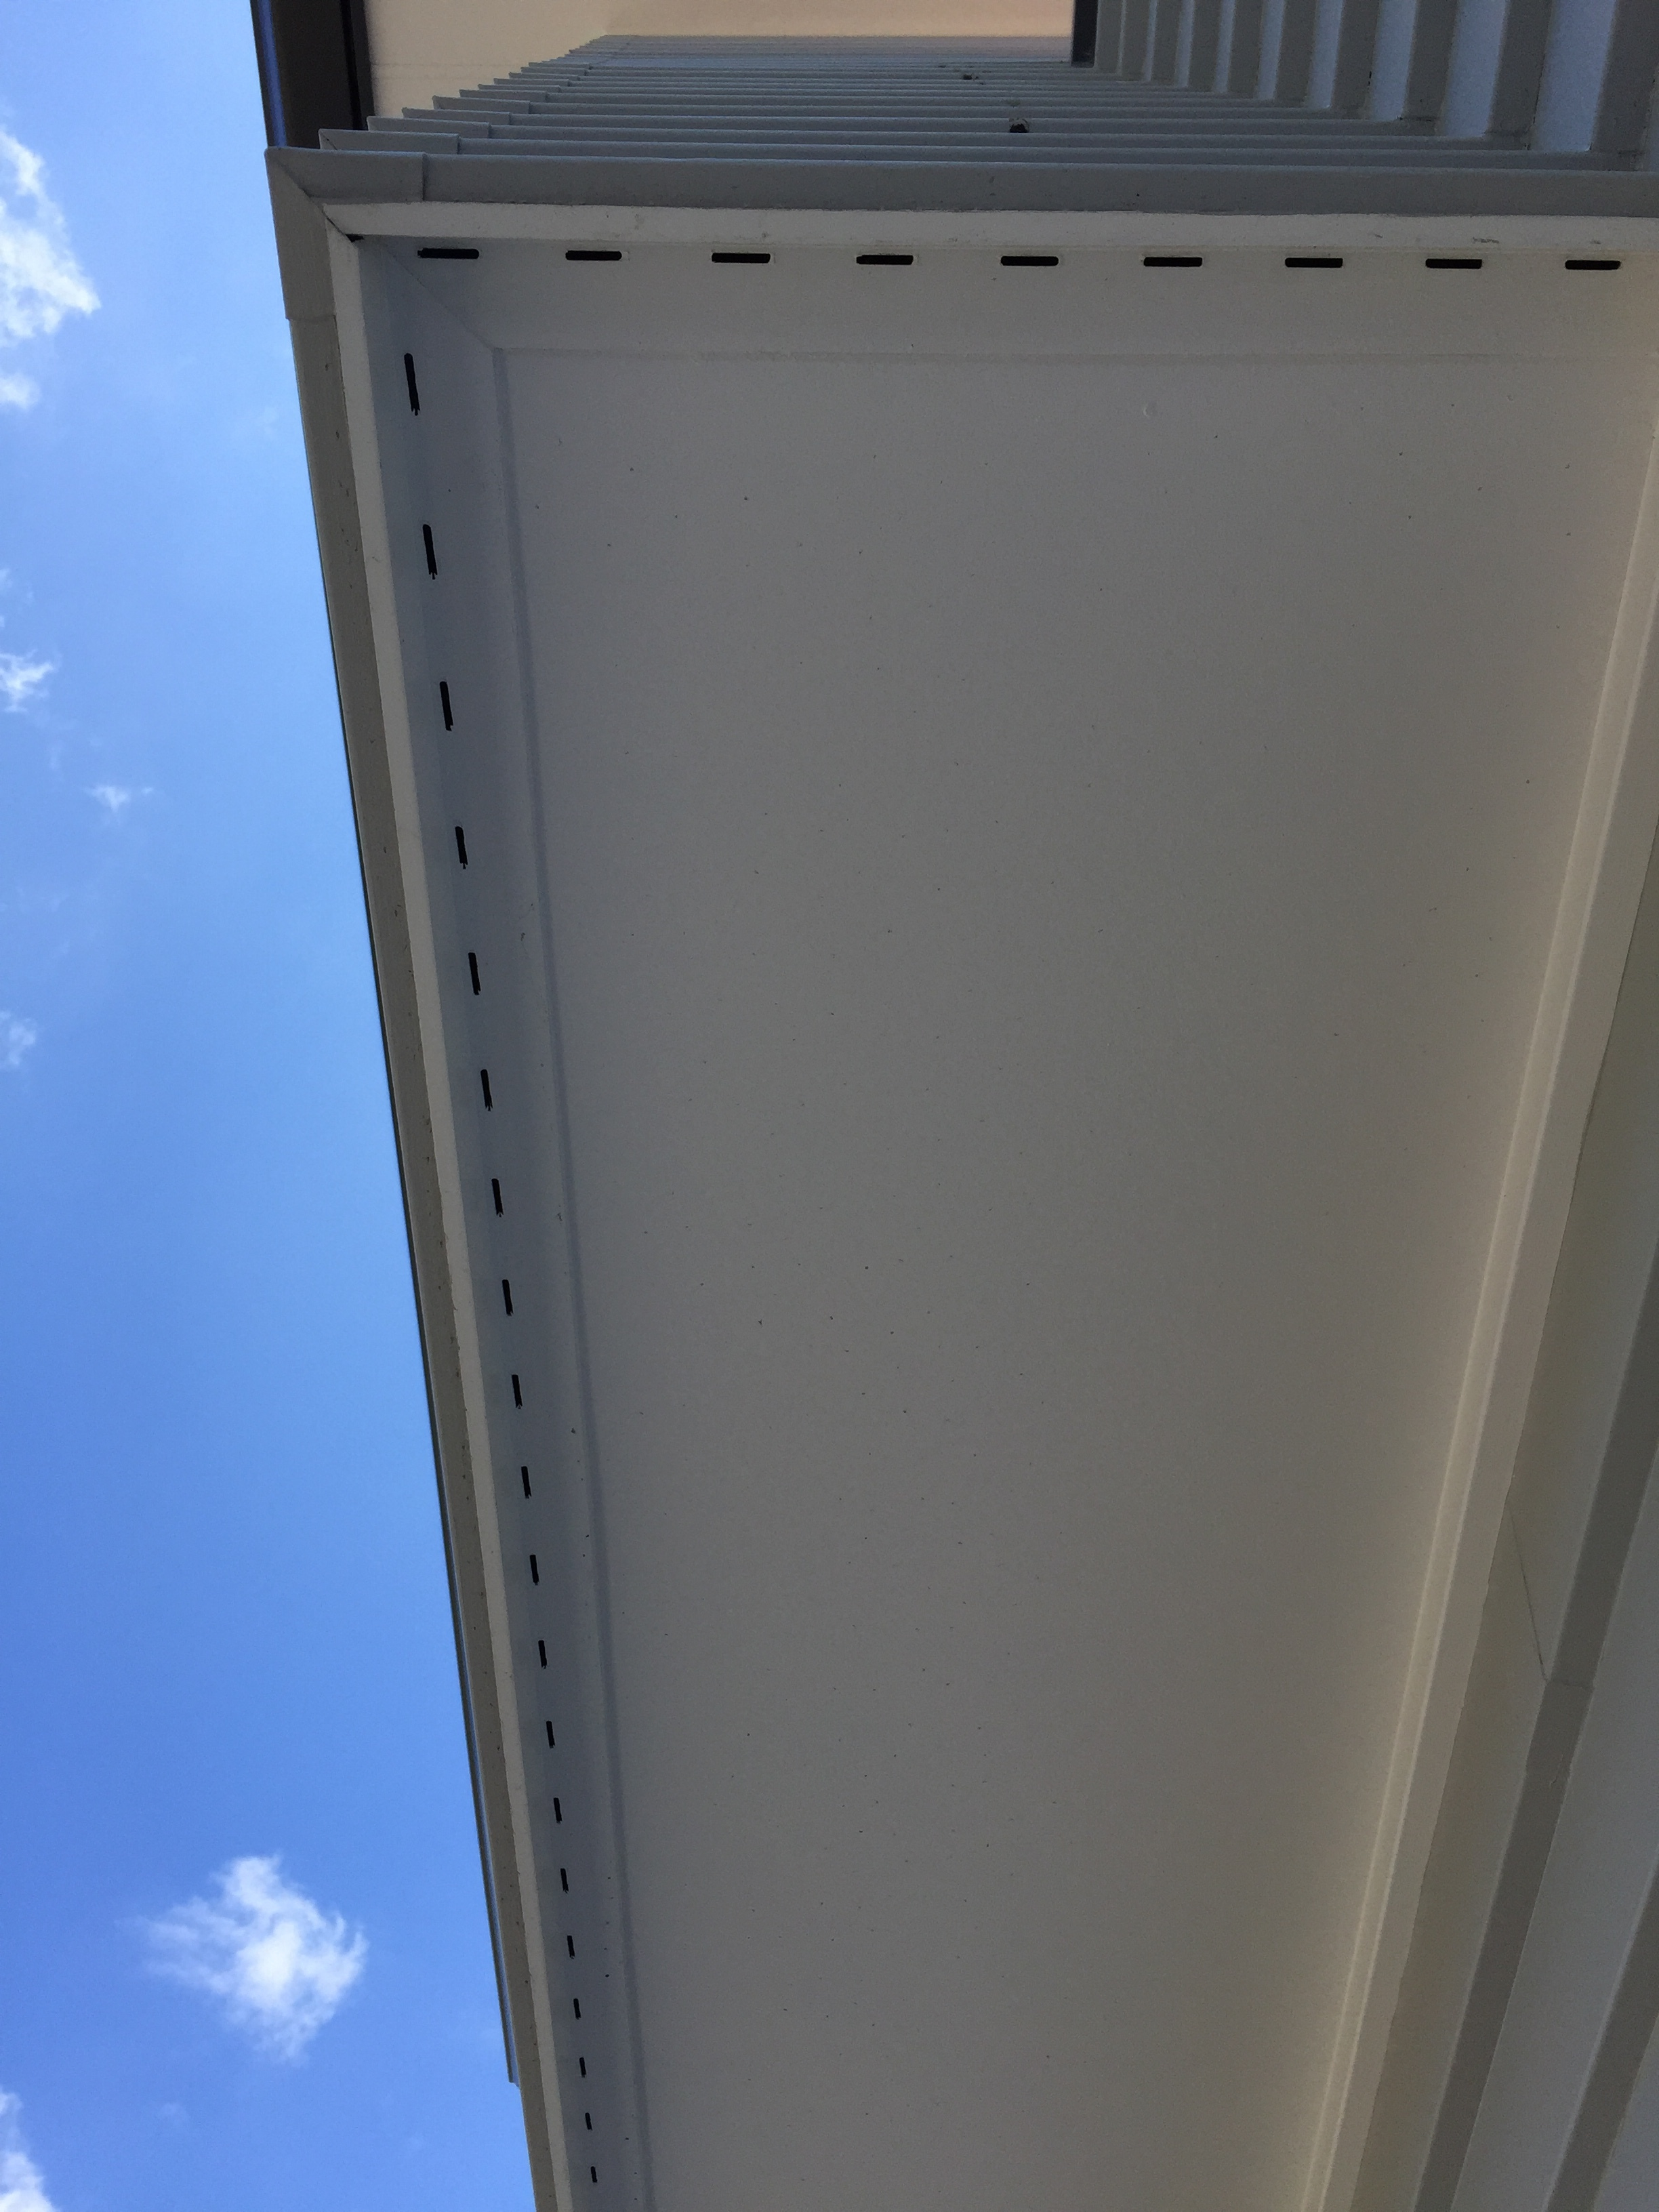 K-Strip from underneath (clean and tidy)